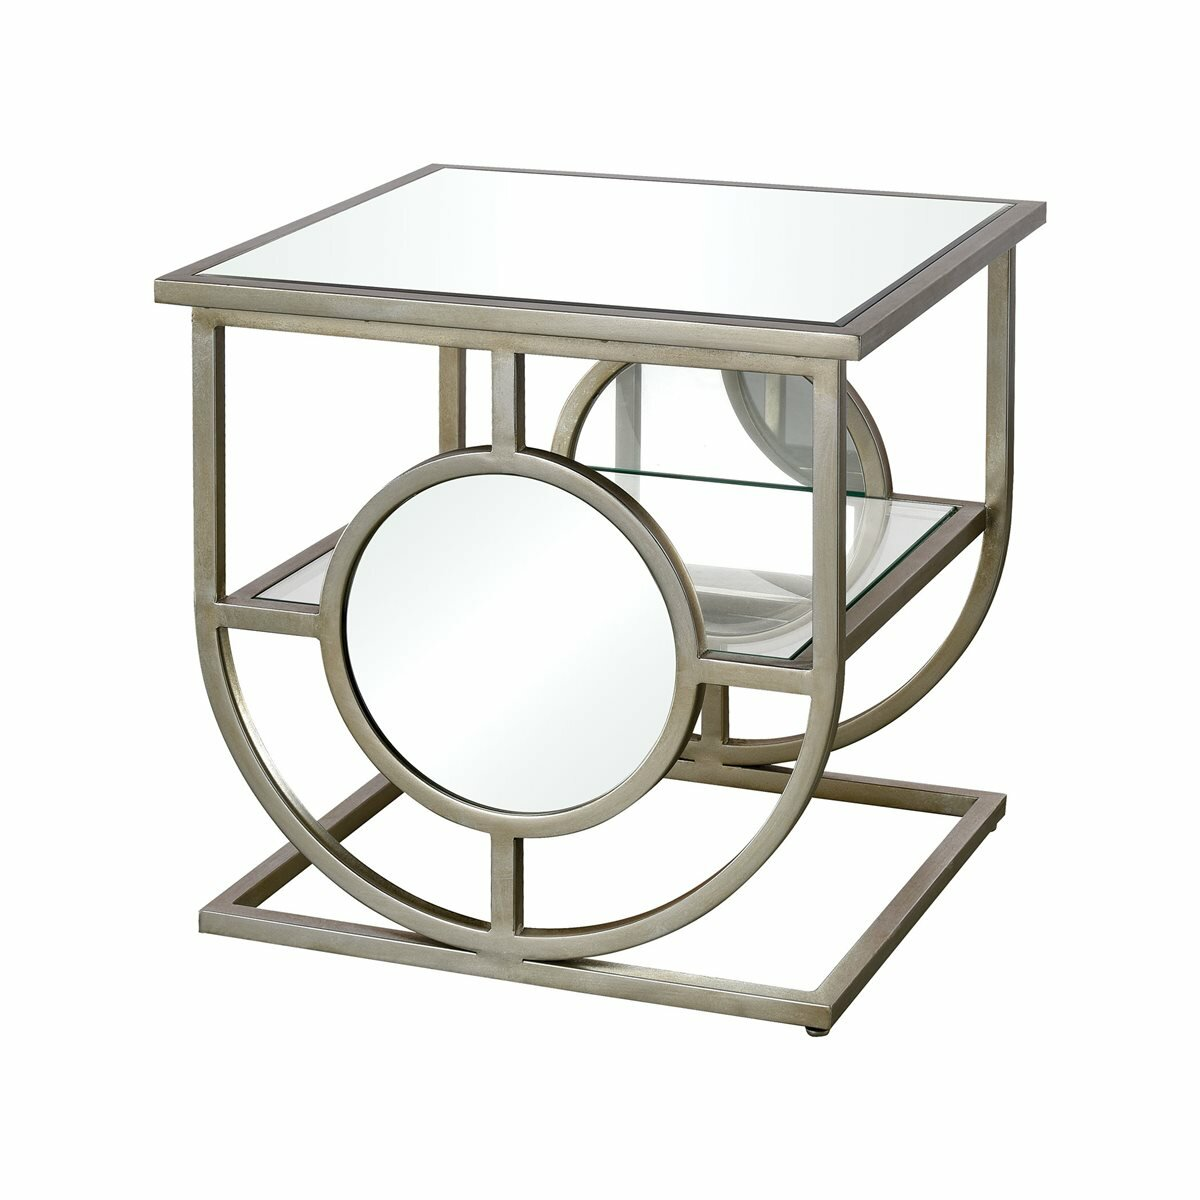 Decor Floor Shelf End Table With Storage Wayfair